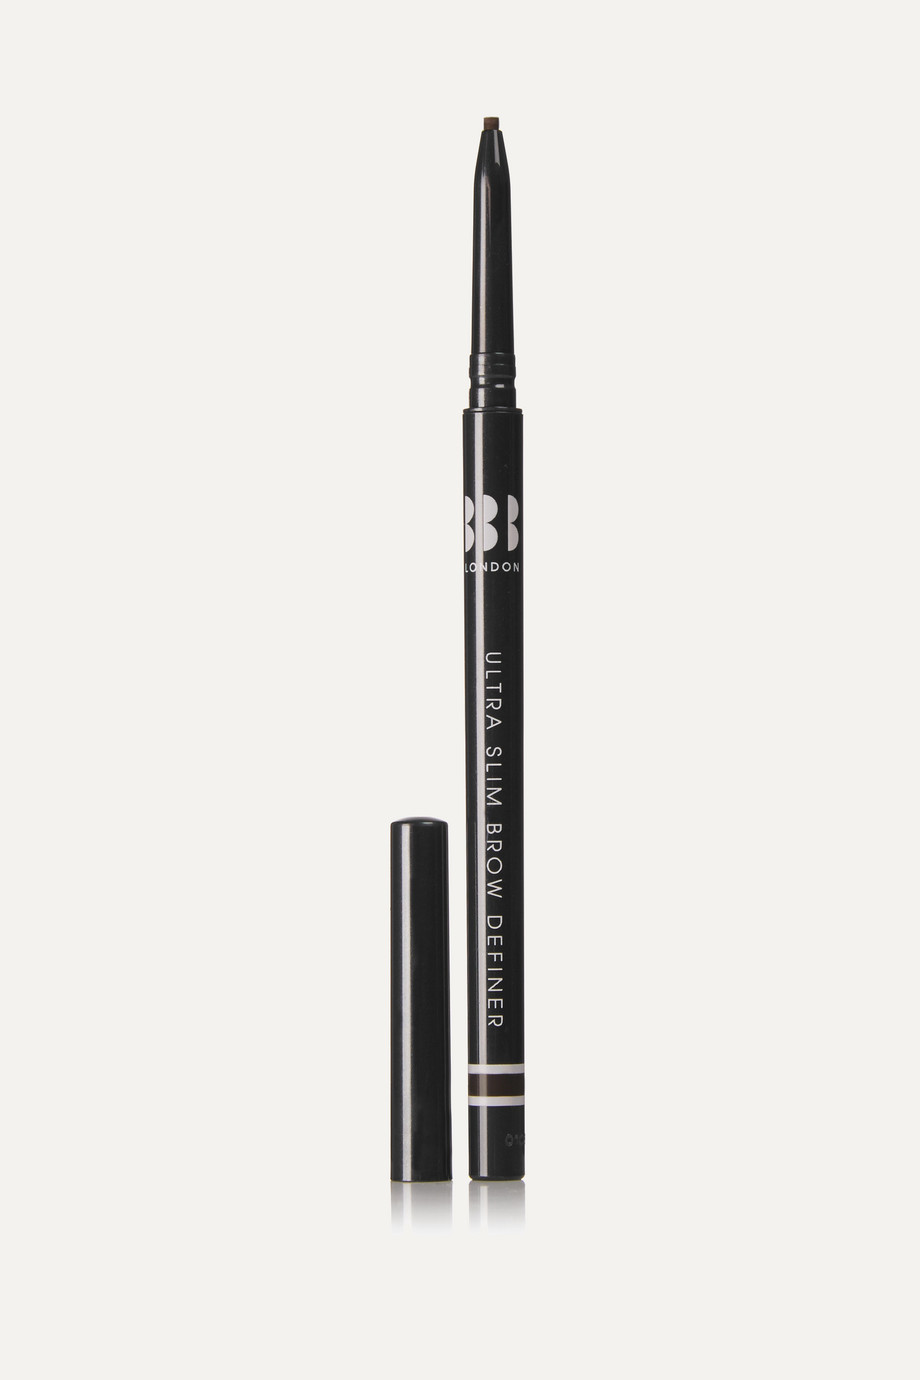 BBB LONDON Ultra Slim Brow Definer - Cardamom